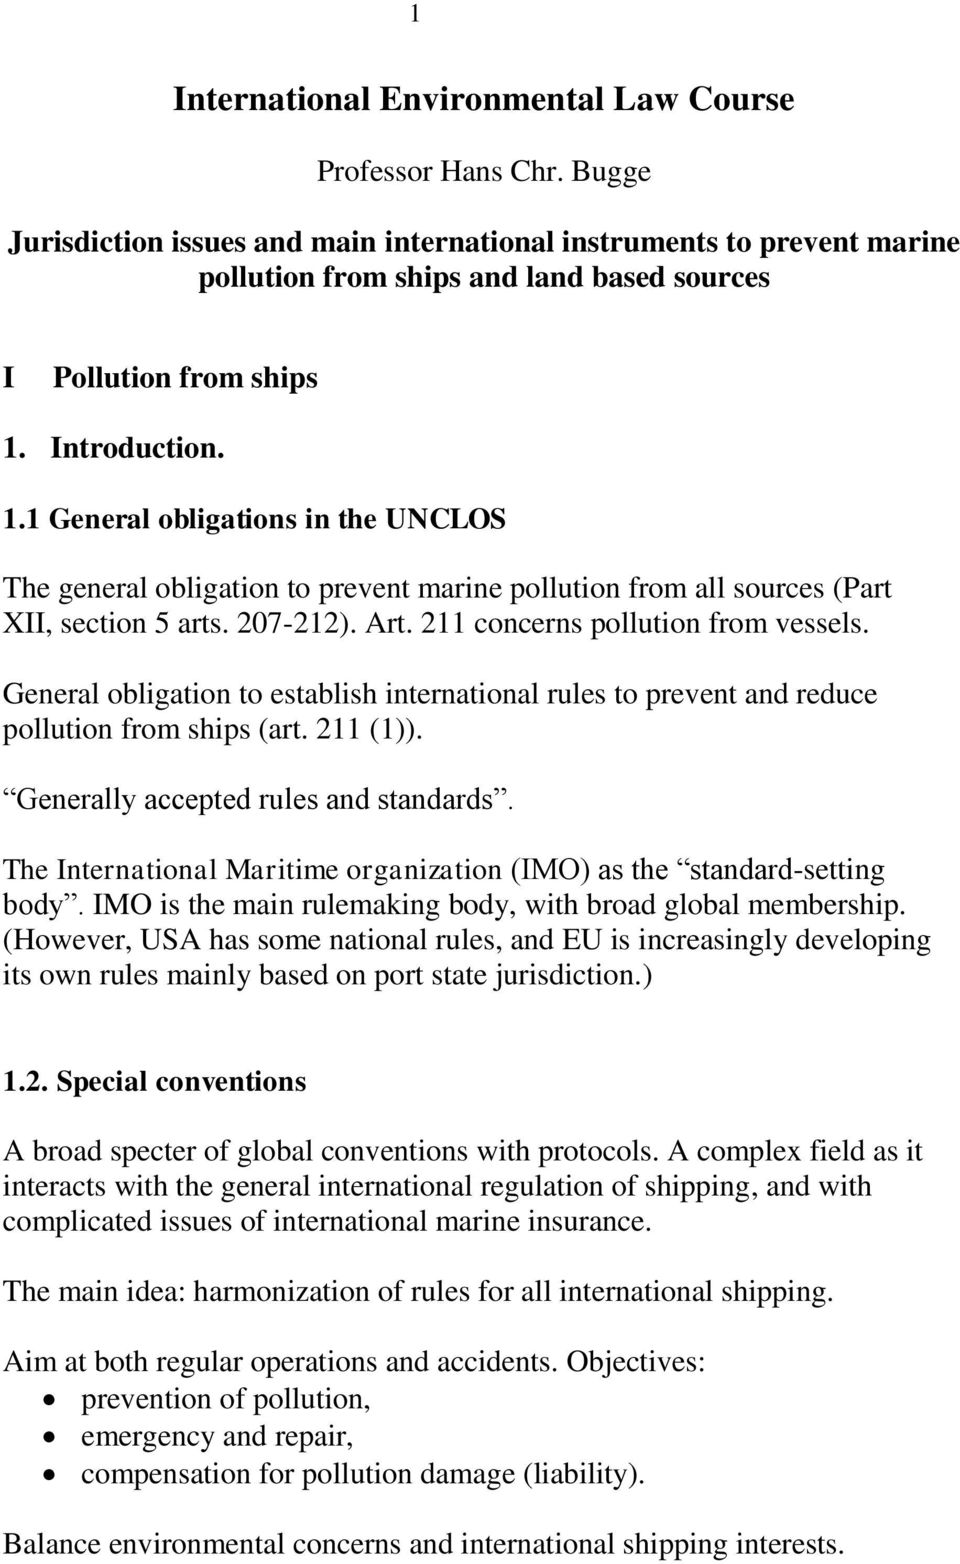 Introduction. 1.1 General obligations in the UNCLOS The general obligation to prevent marine pollution from all sources (Part XII, section 5 arts. 207-212). Art. 211 concerns pollution from vessels.